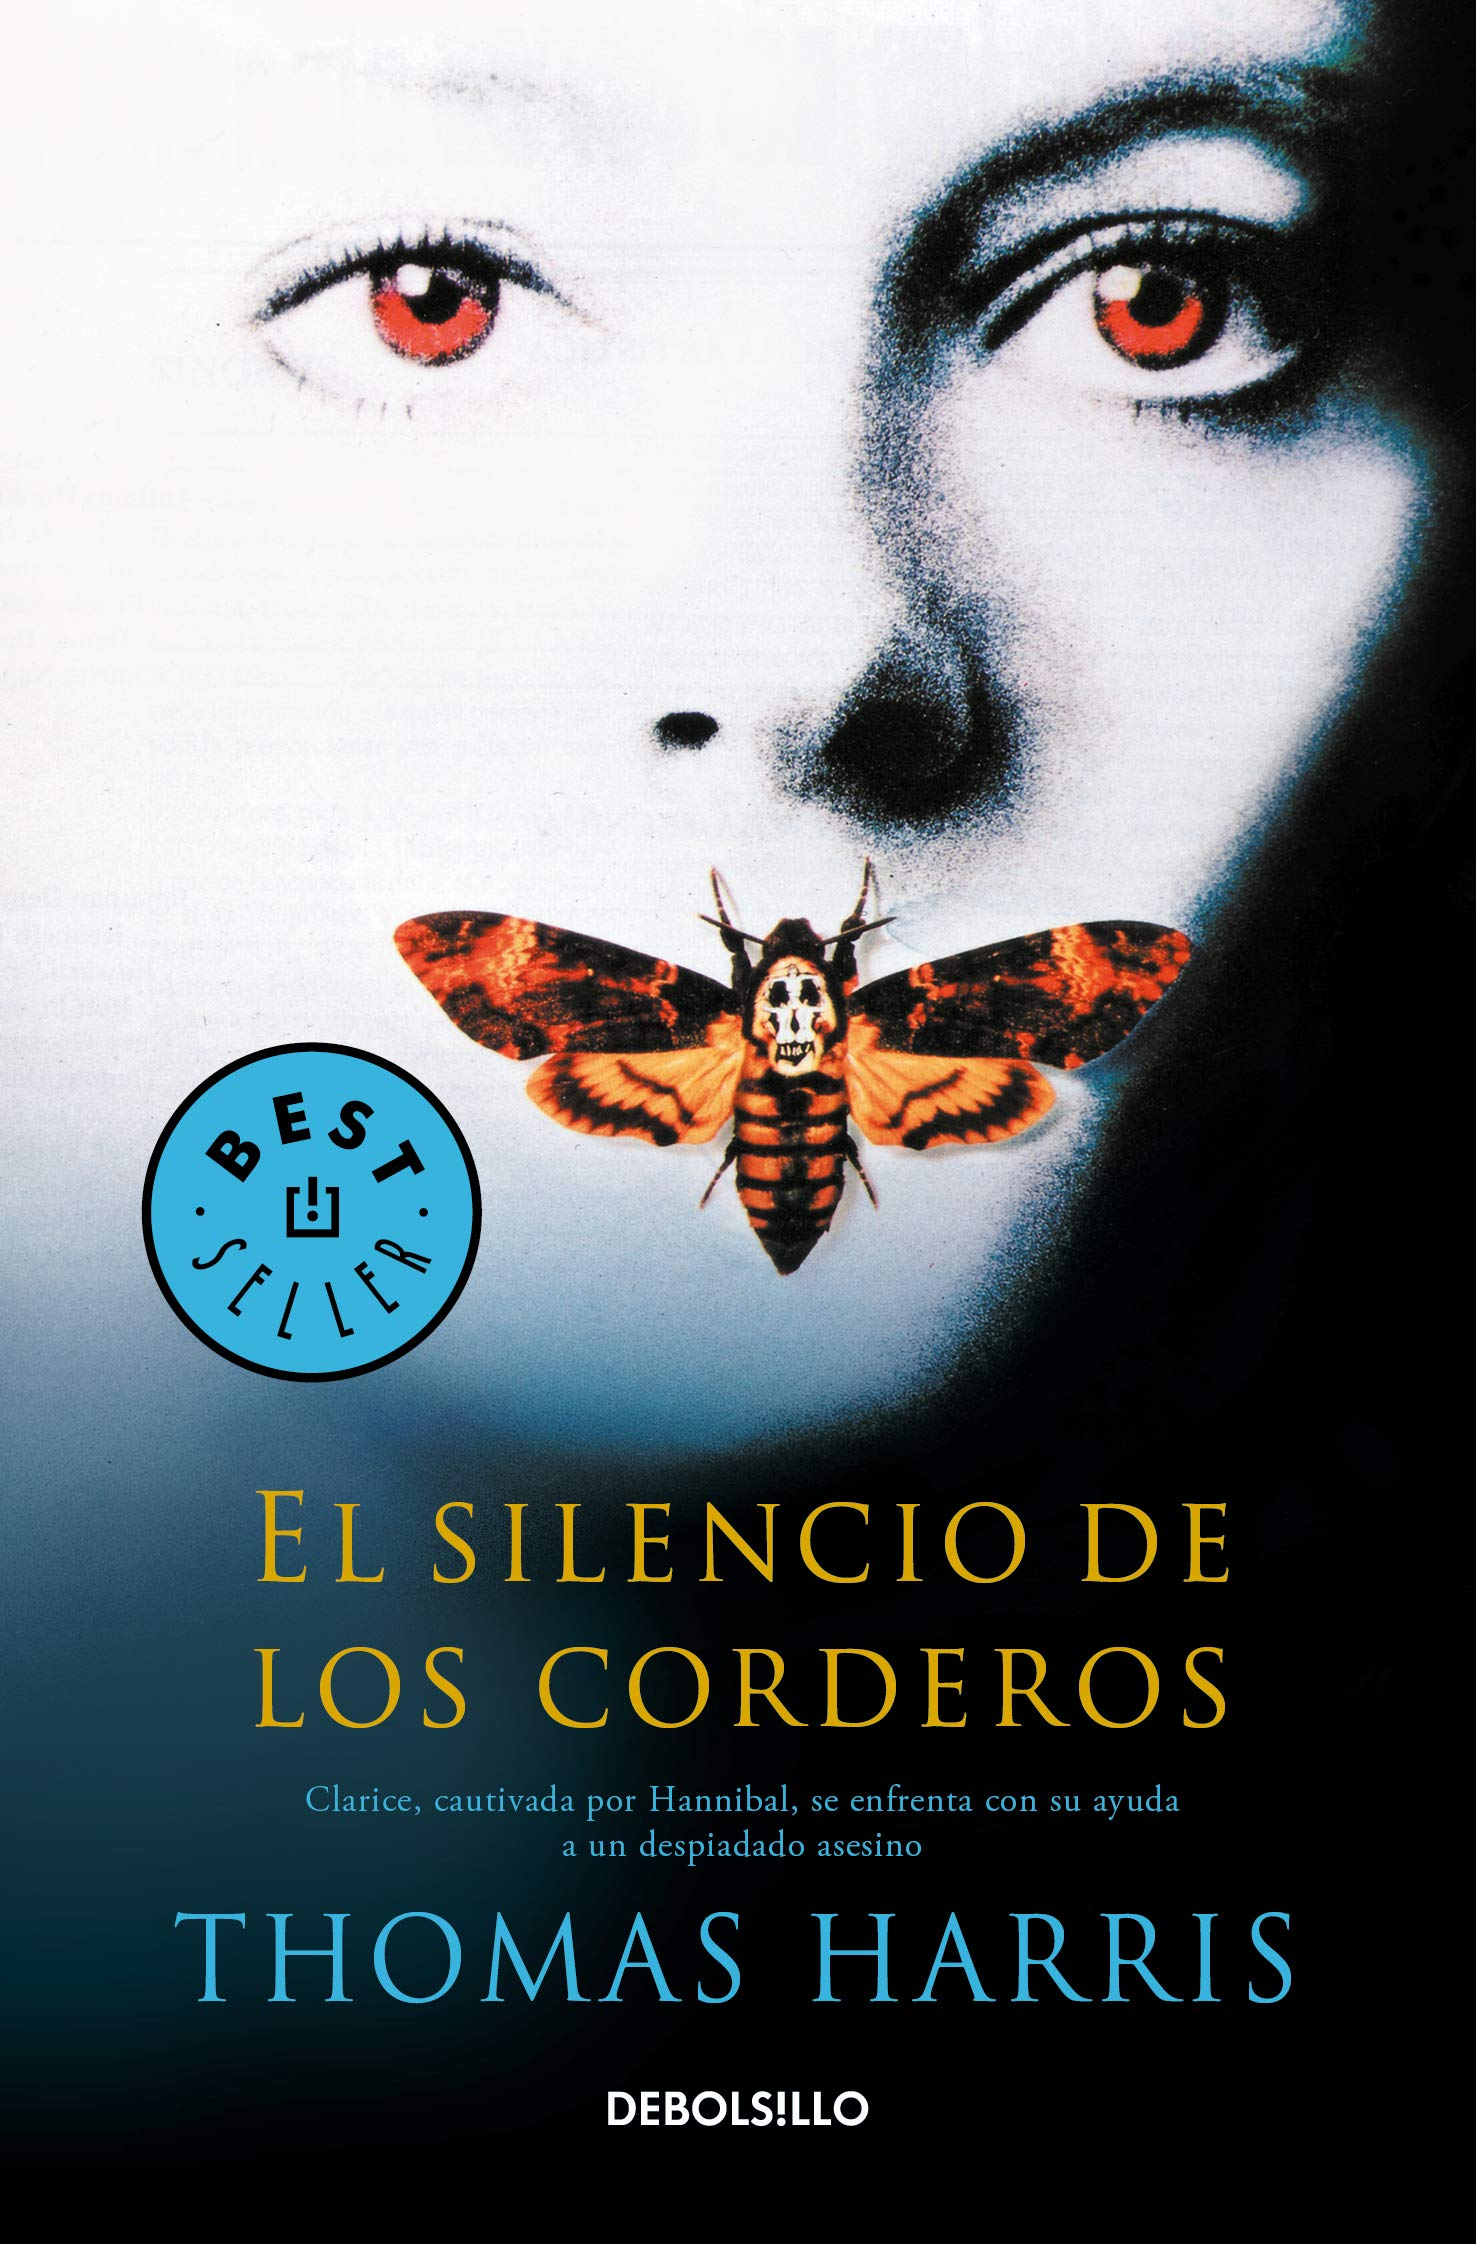 El Silencio de Los Corderos / The Silence of the Lambs: Amazon.es: Harris, Thomas: Libros